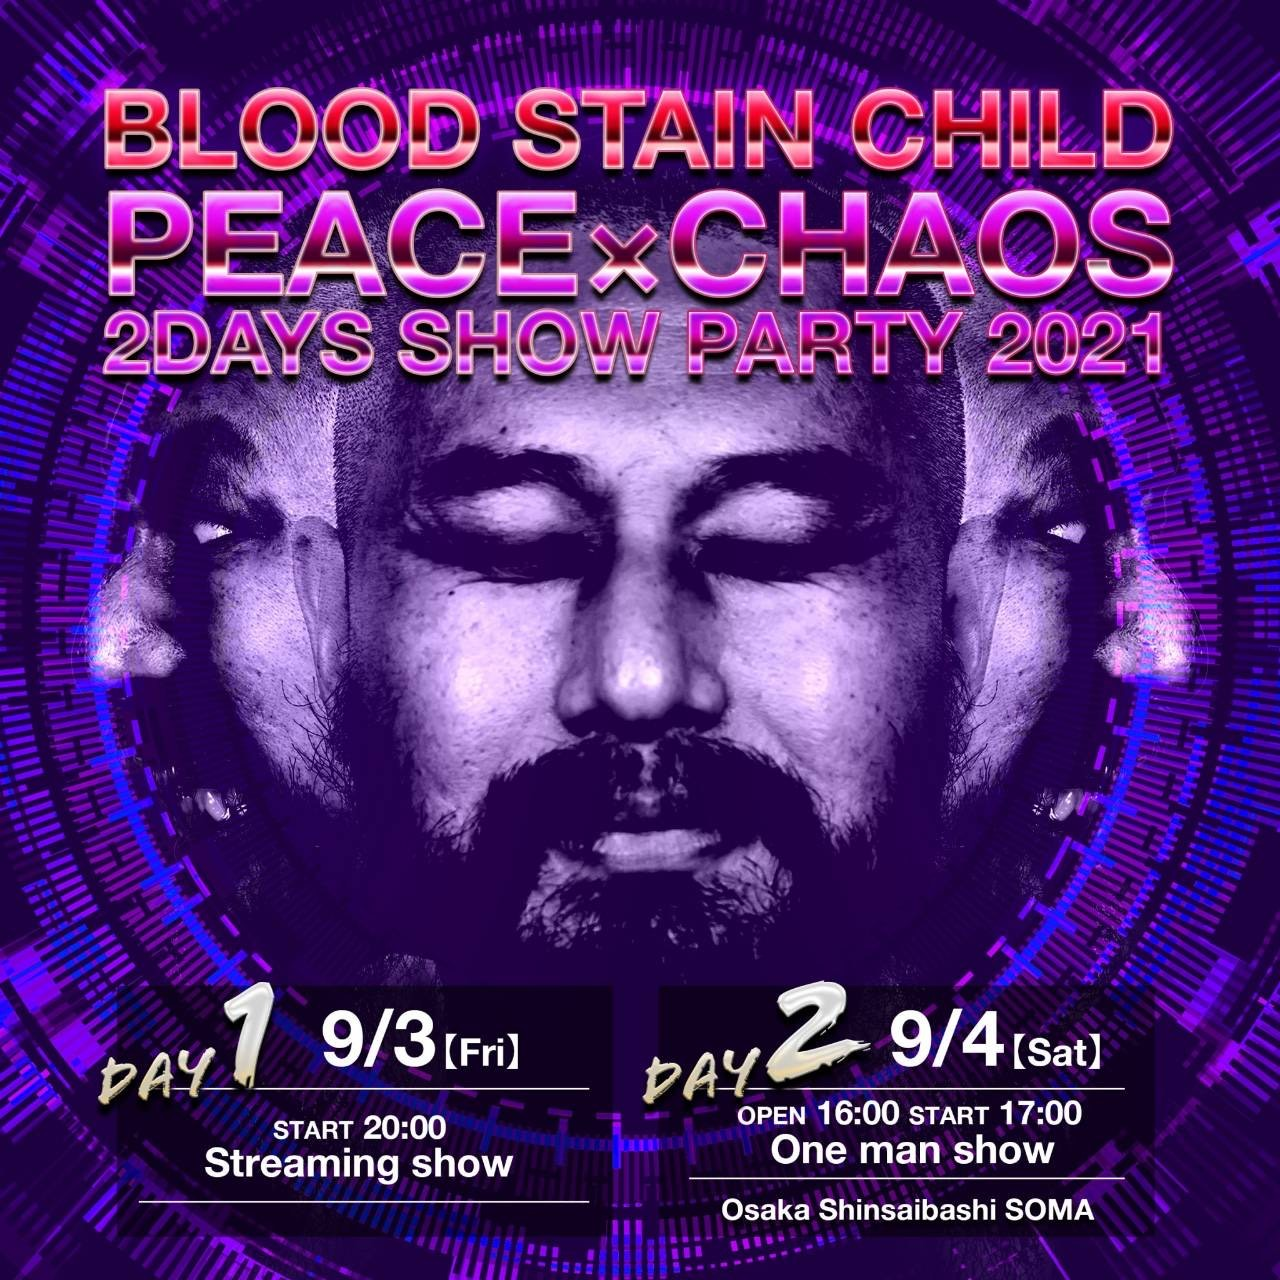 """BLOOD STAIN CHILD 2DAYS SHOW PARTY 2021 """"PEACE × CHAOS"""""""